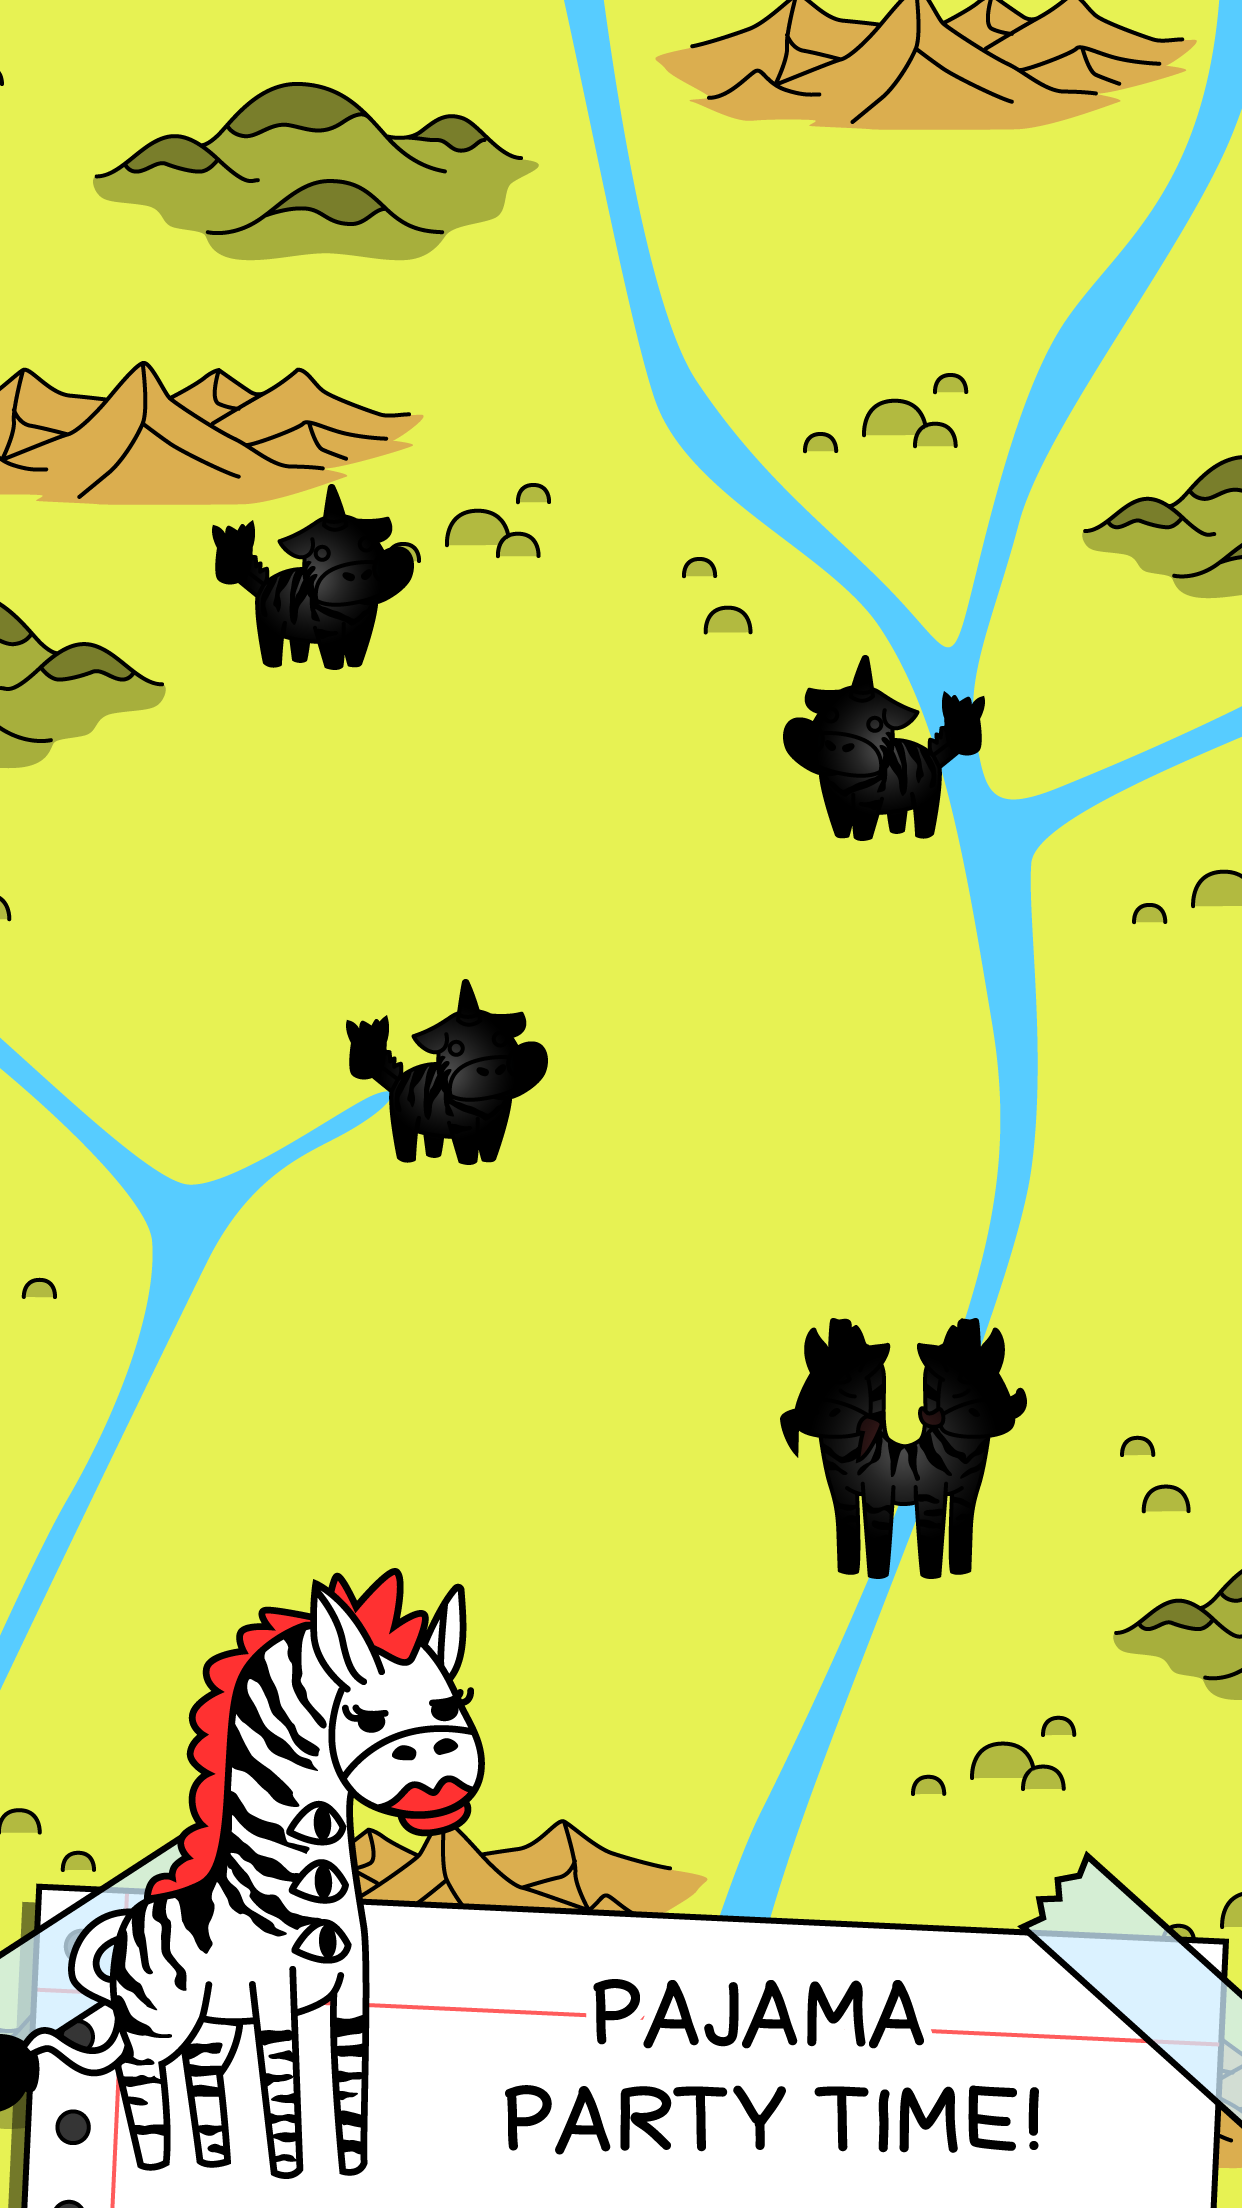 Zebra Evolution | Mutant Zebra Clicker Game Screenshot